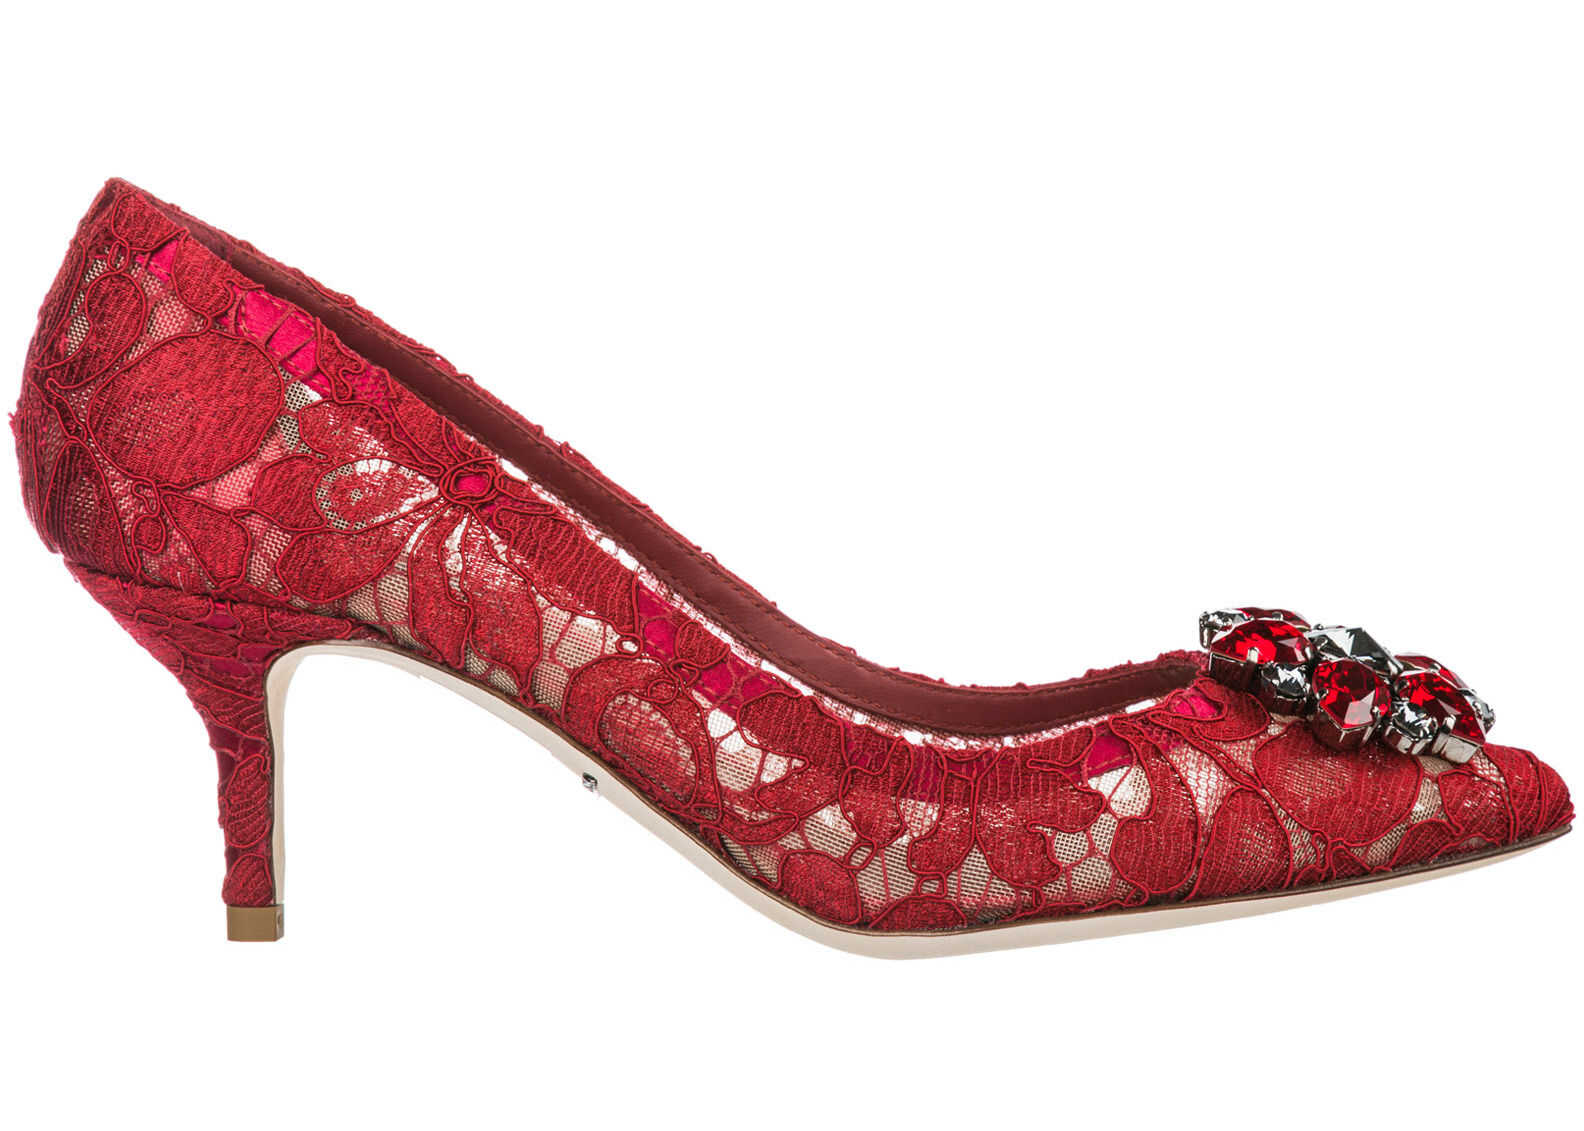 Dolce & Gabbana Rainbow Lace Red